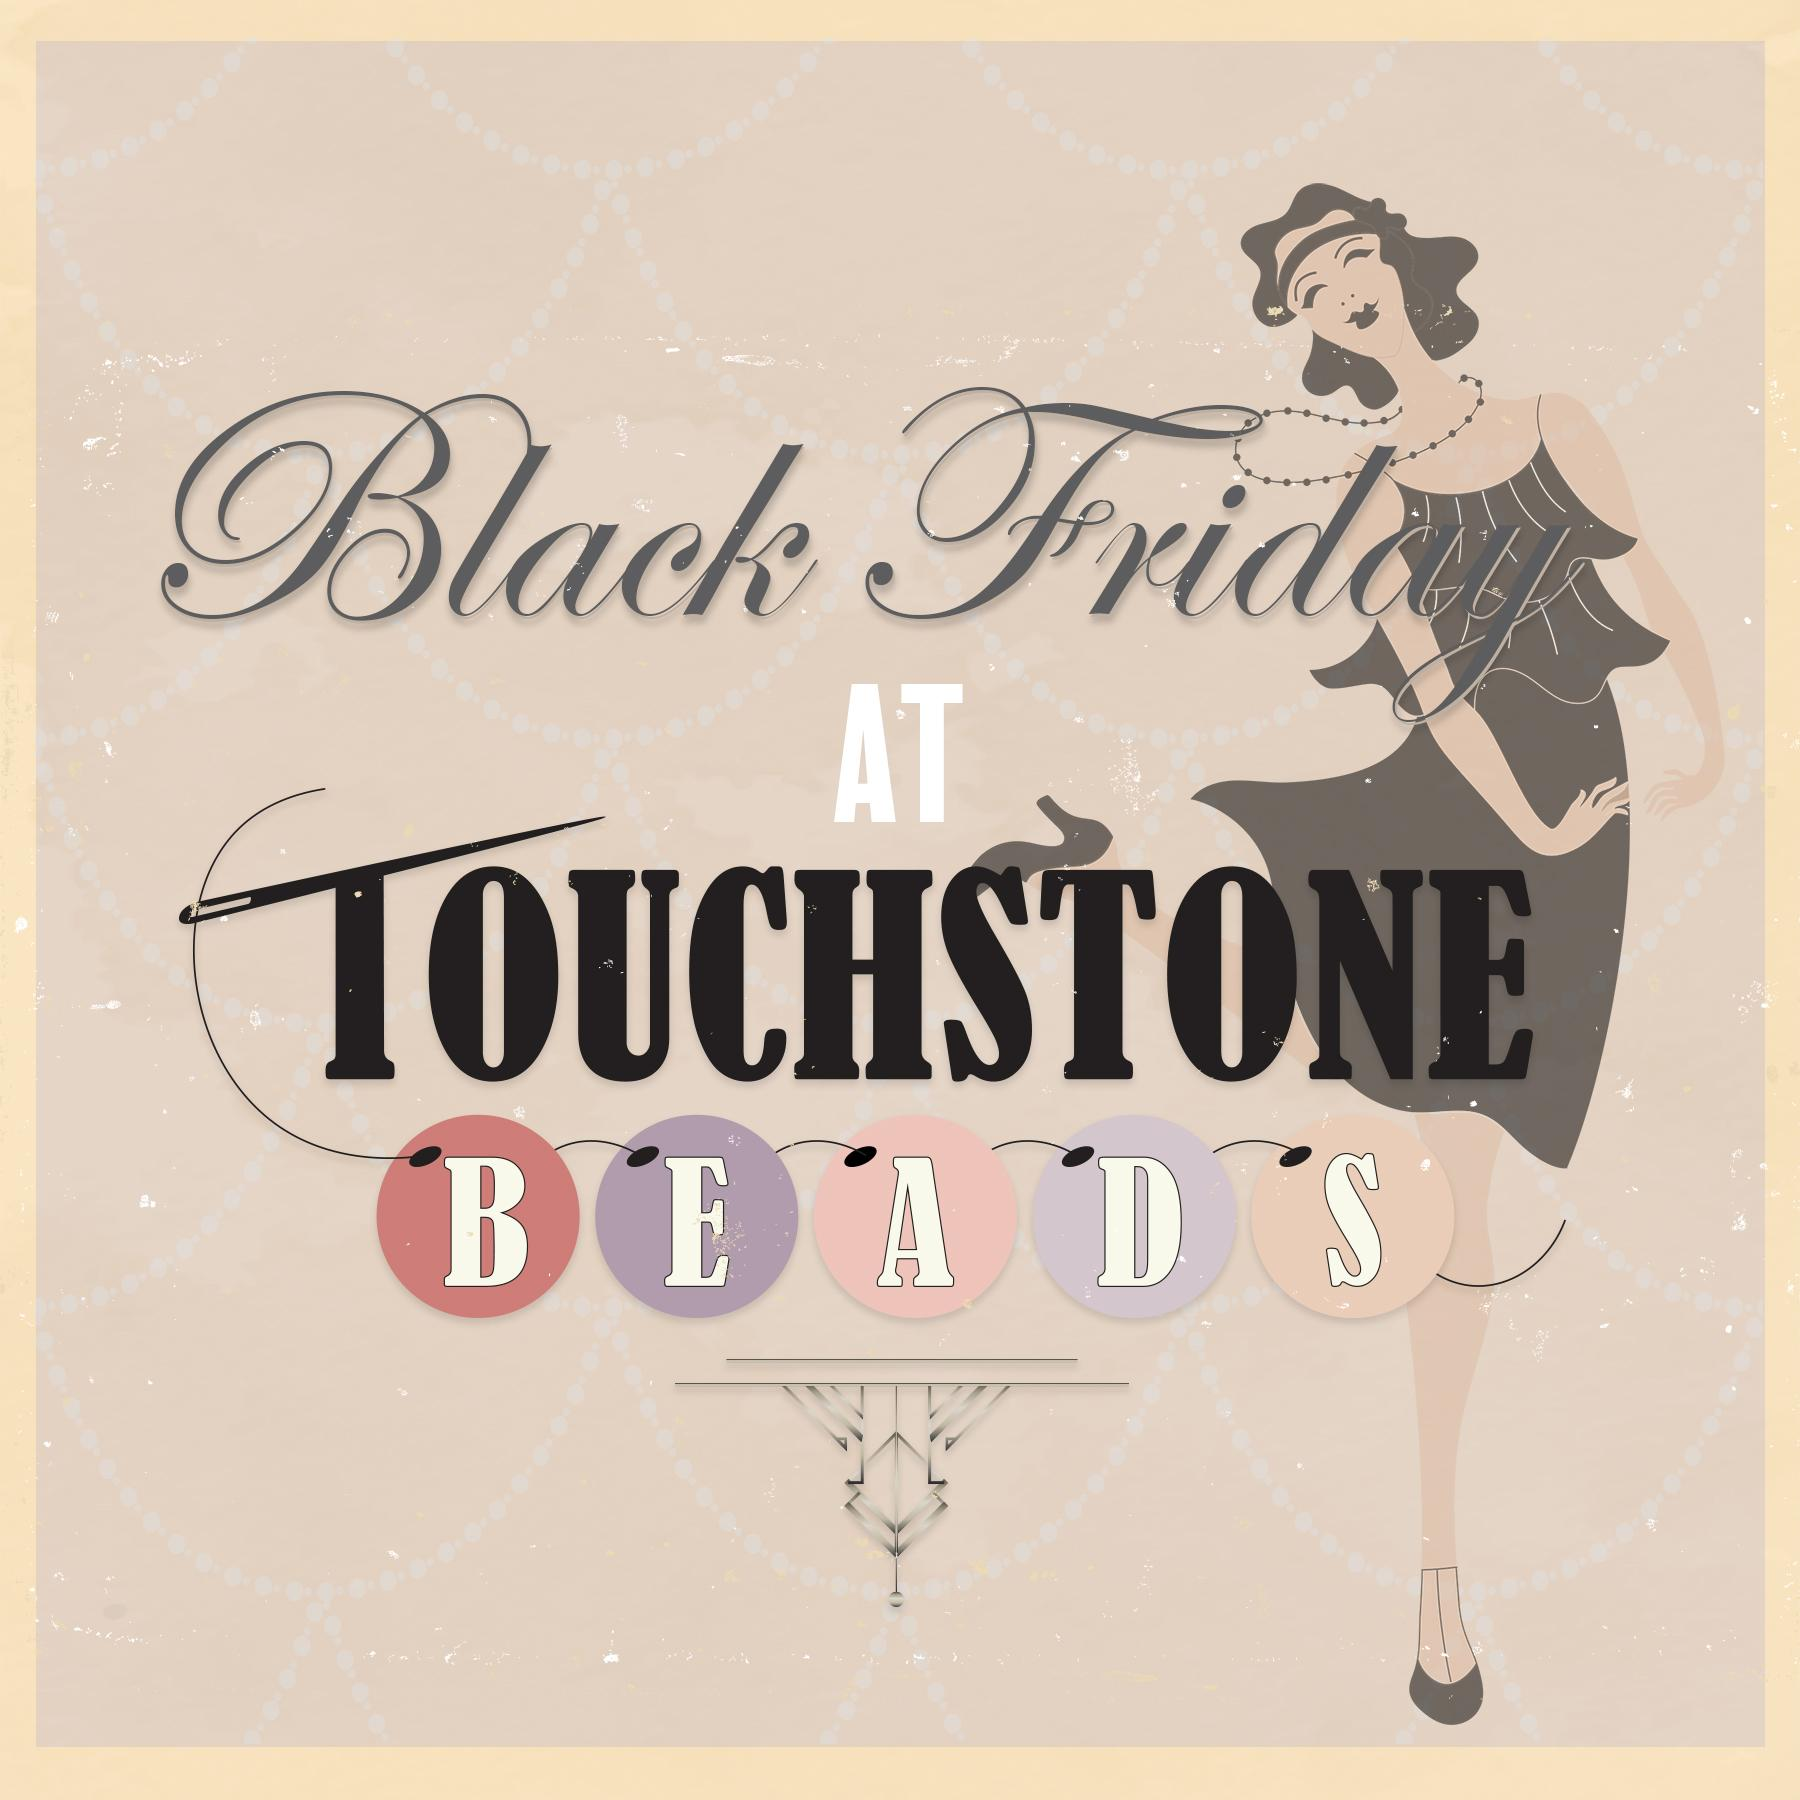 Black Friday at Touchstone Beads